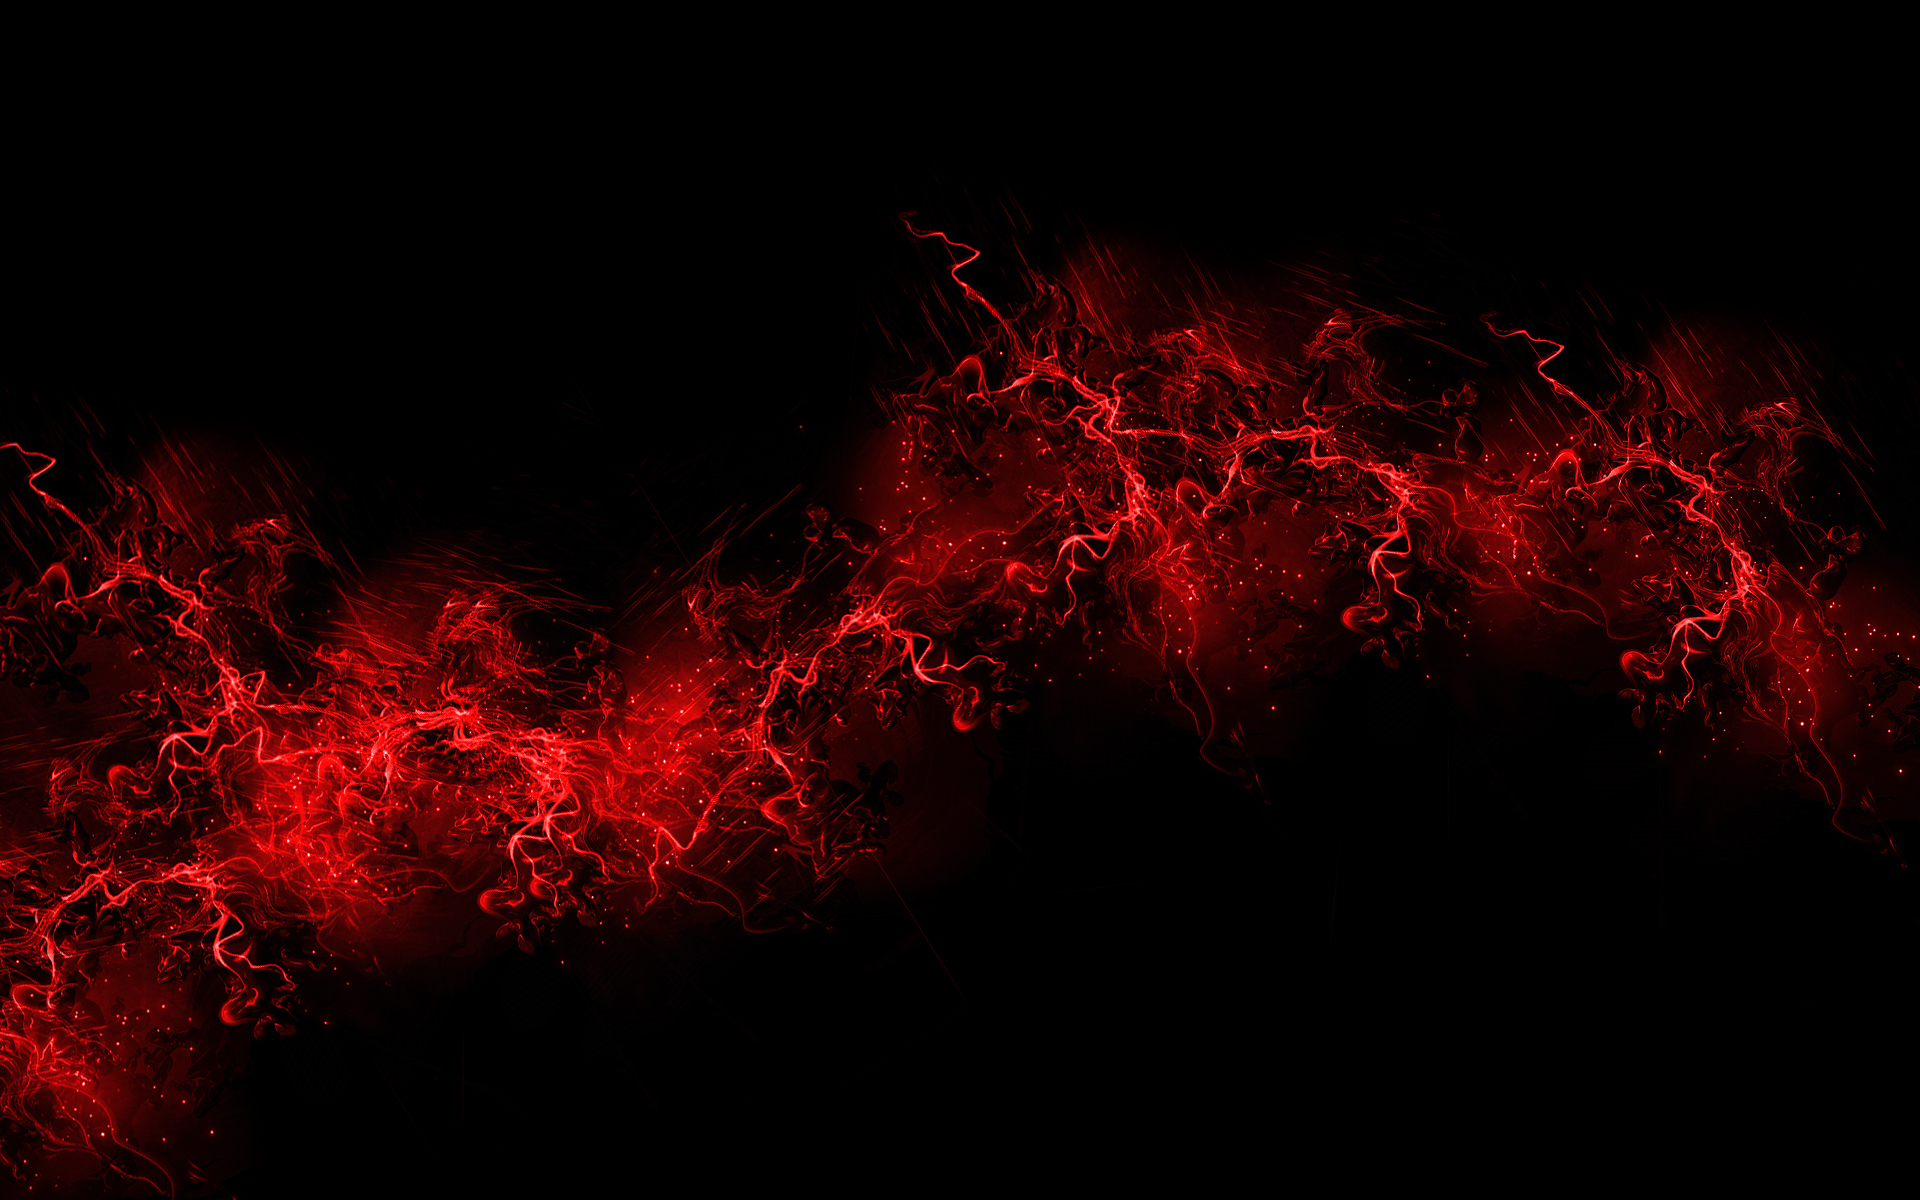 Wallpaper Red flames on black wallpaper